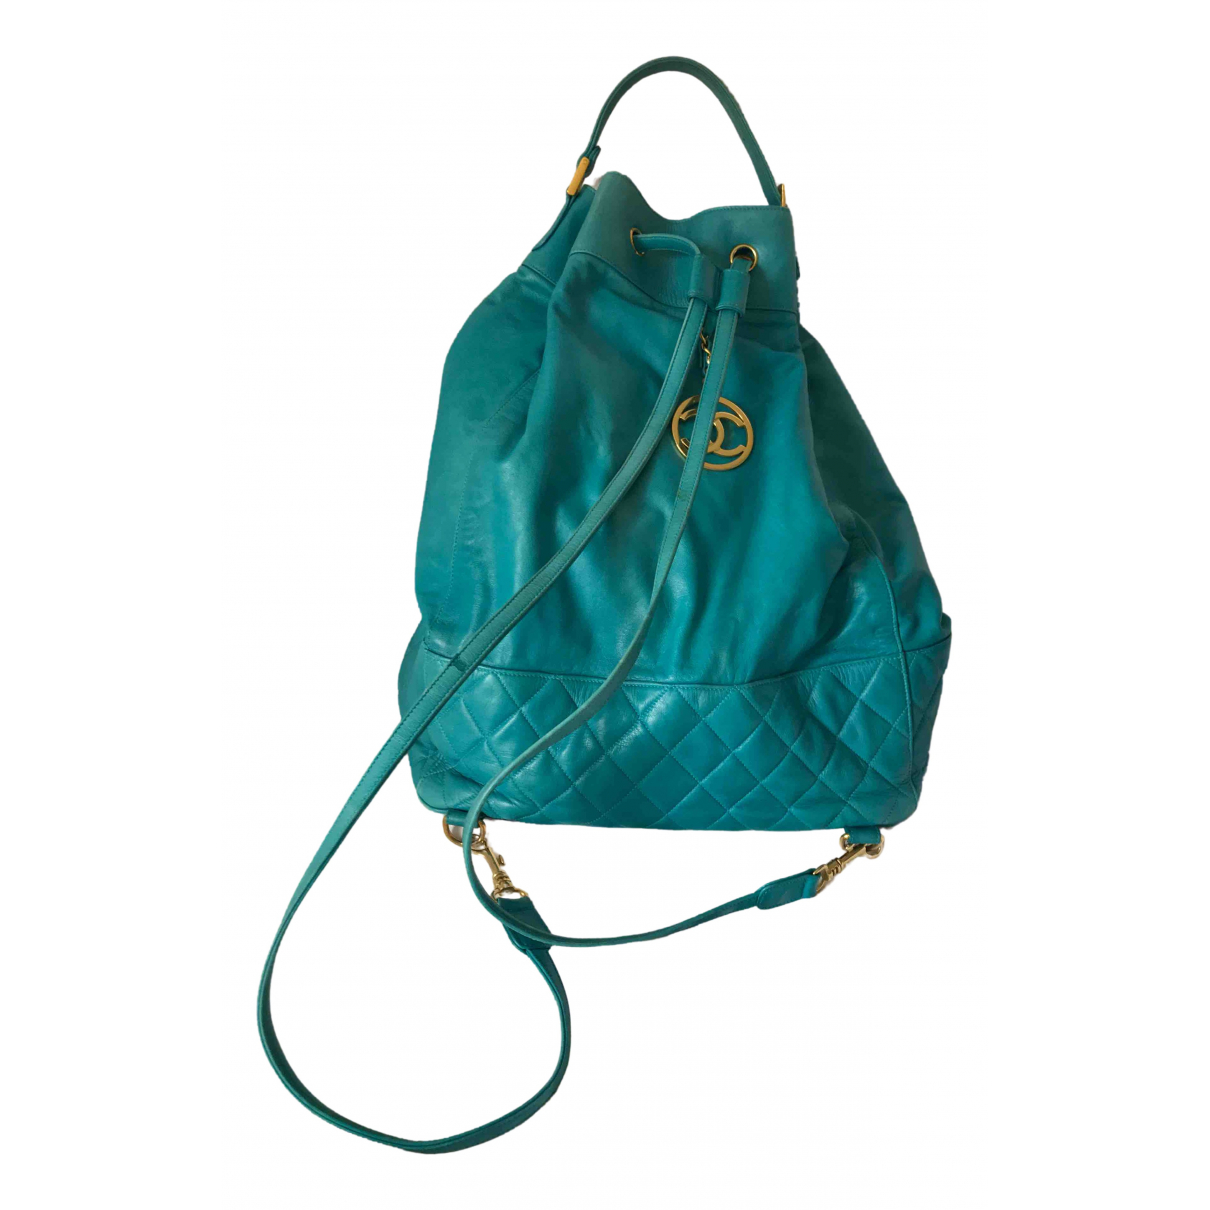 Chanel \N Green Leather backpack for Women \N